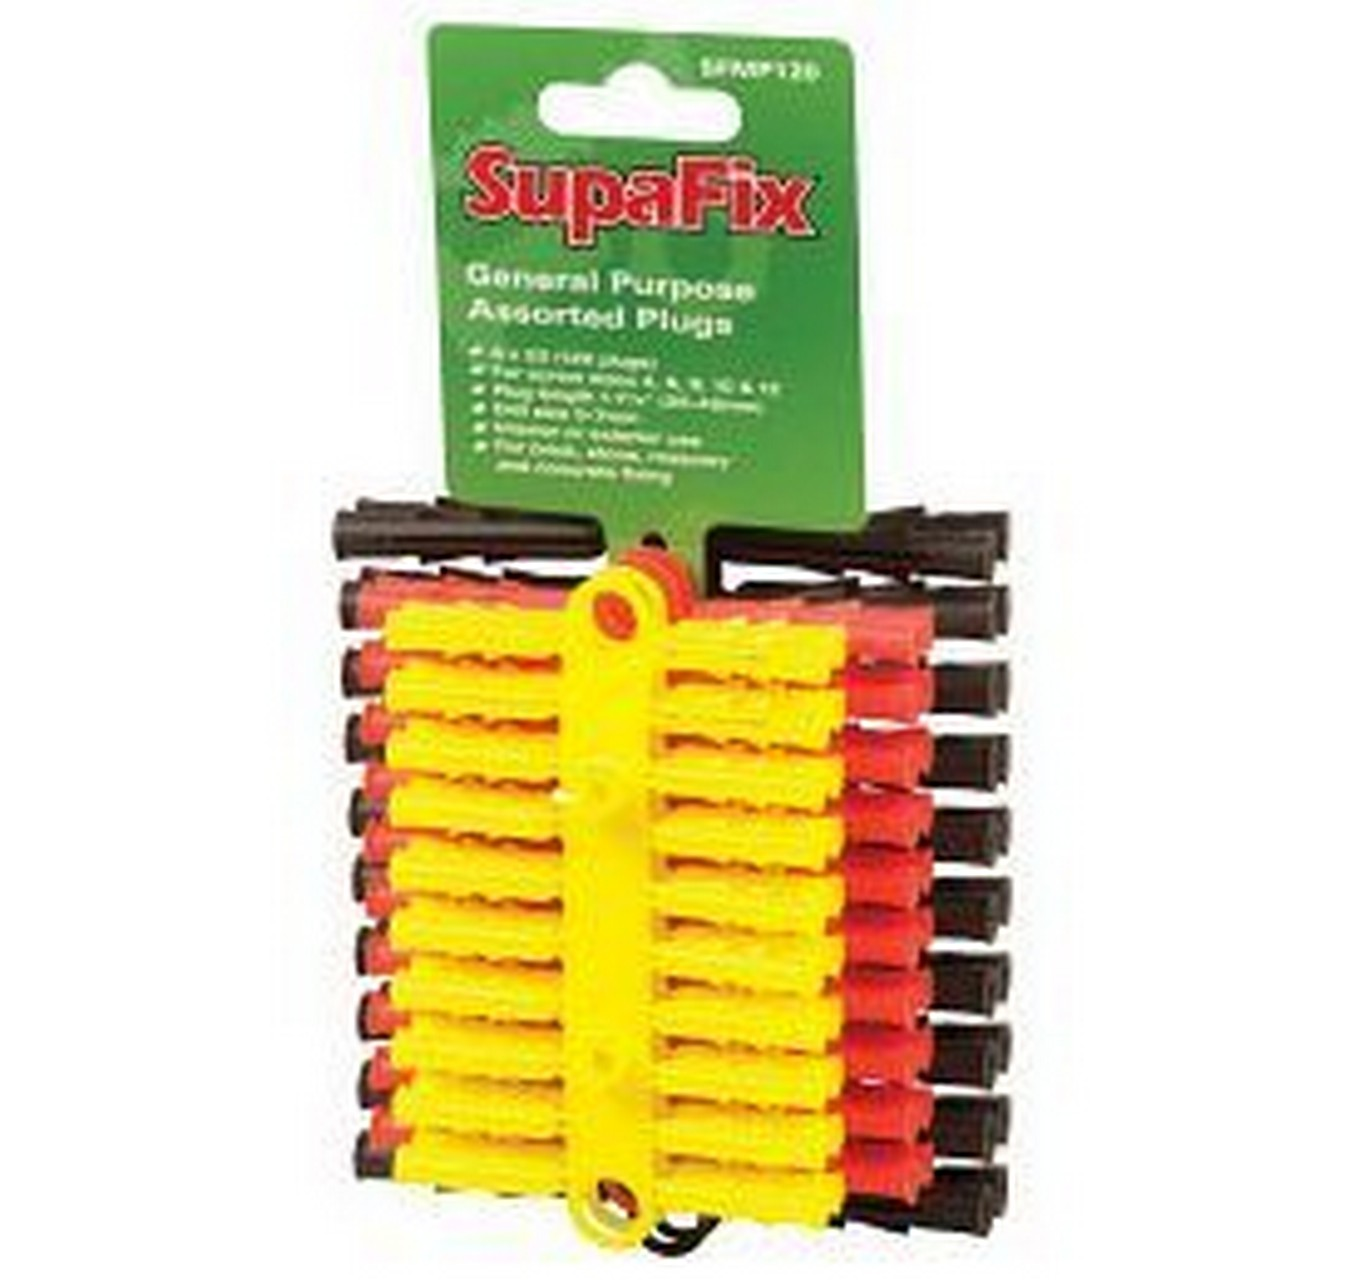 Assorted Wall Plugs - 120 Pack